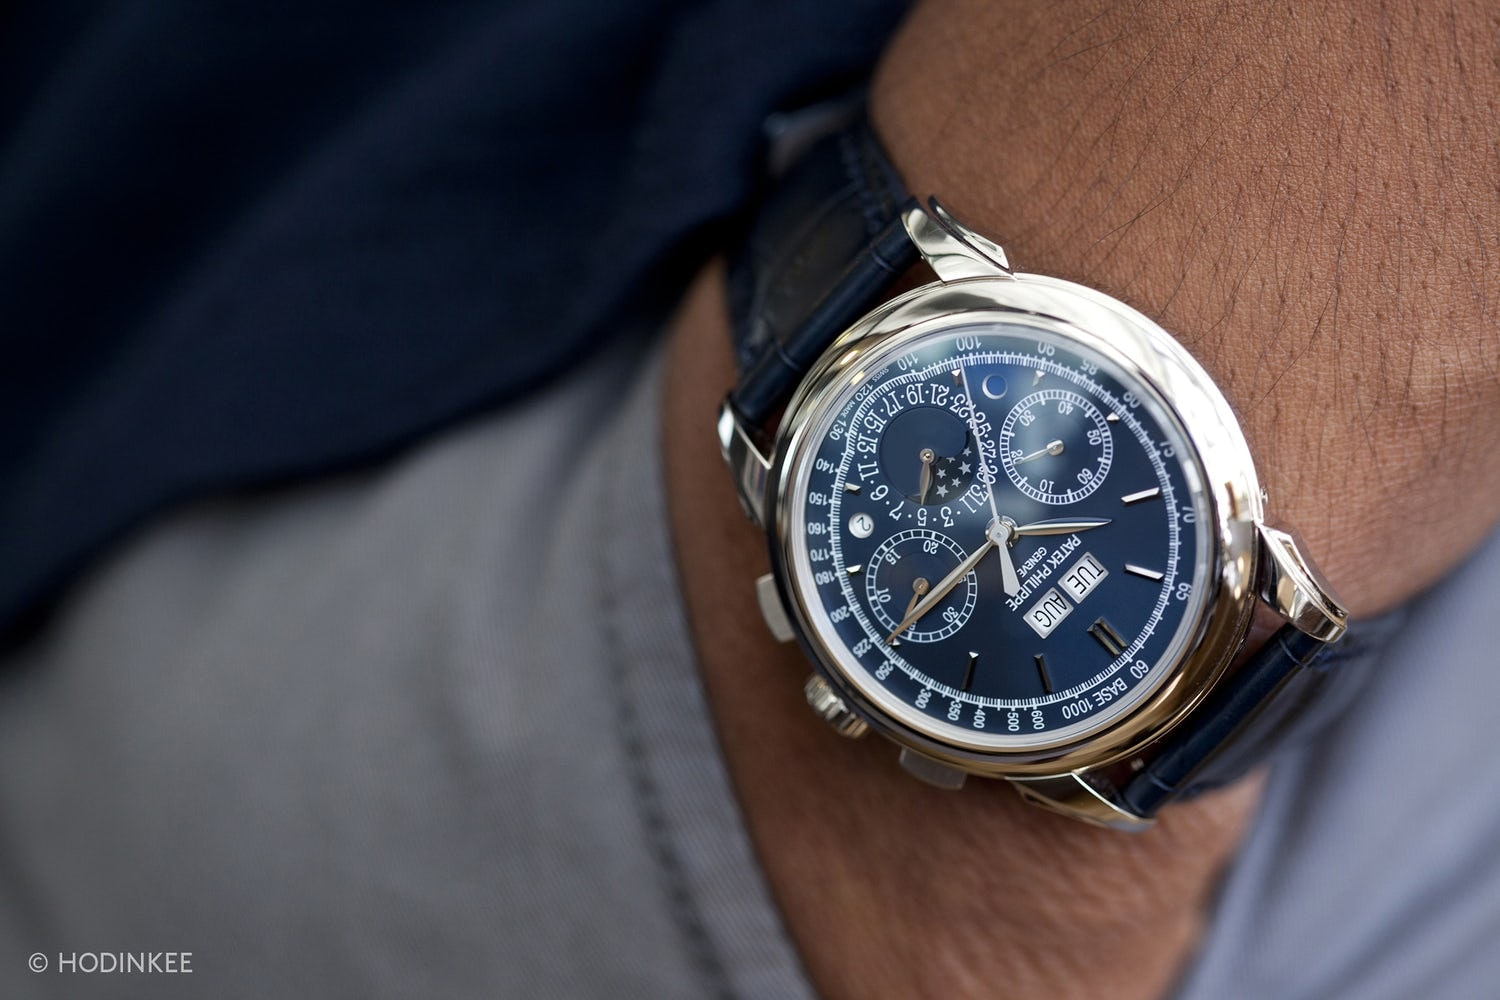 A Week On The Wrist: Ten Of The Biggest, Baddest HODINKEE Reviews Ever A Week On The Wrist: Ten Of The Biggest, Baddest HODINKEE Reviews Ever patek